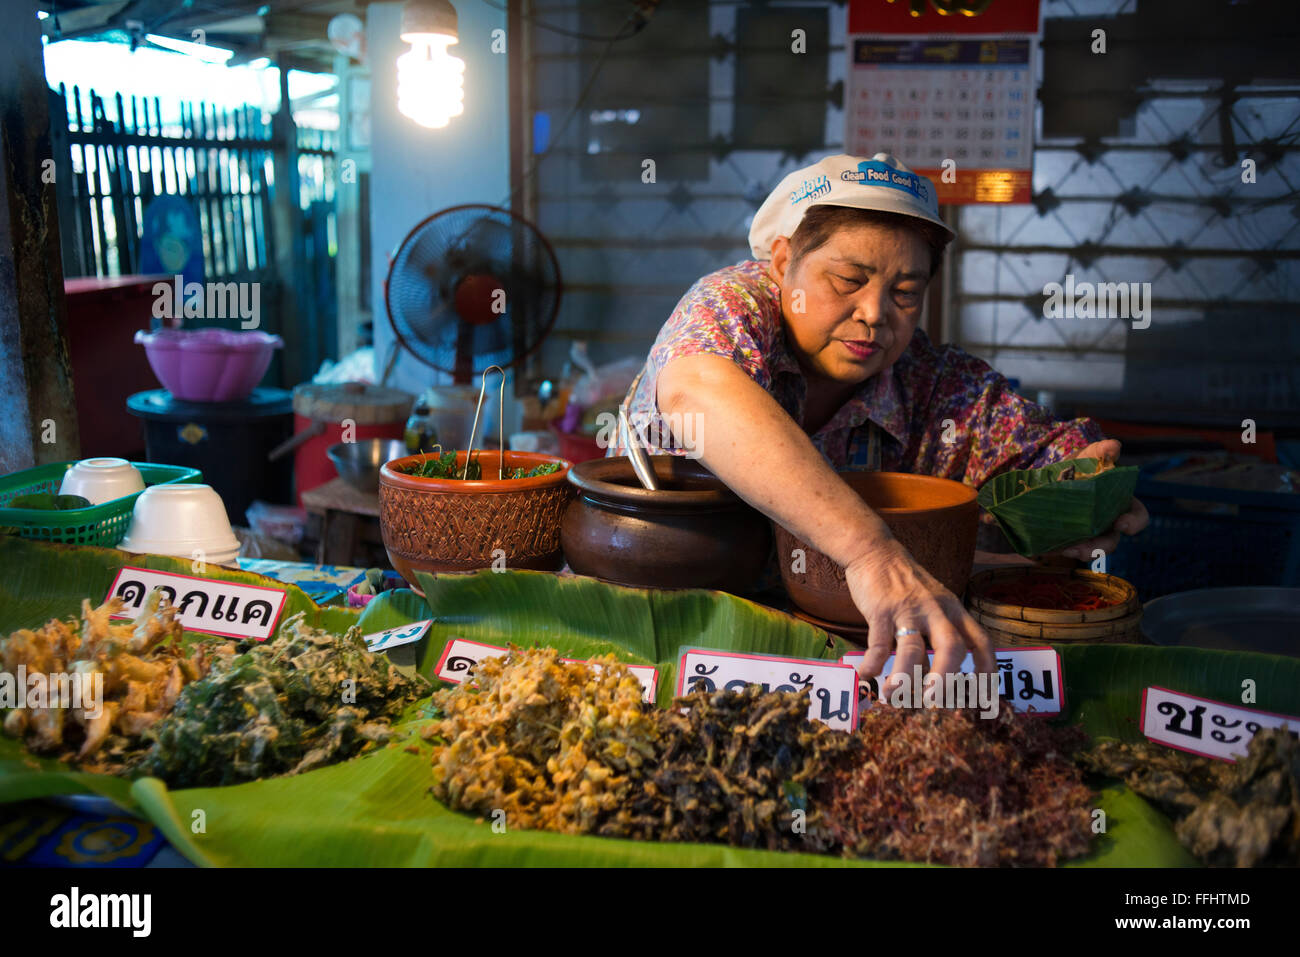 Woman seller. Food stall. Fish, vegetables, fast food. Ko Kret (also Koh Kred) is an island in the Chao Phraya River, - Stock Image